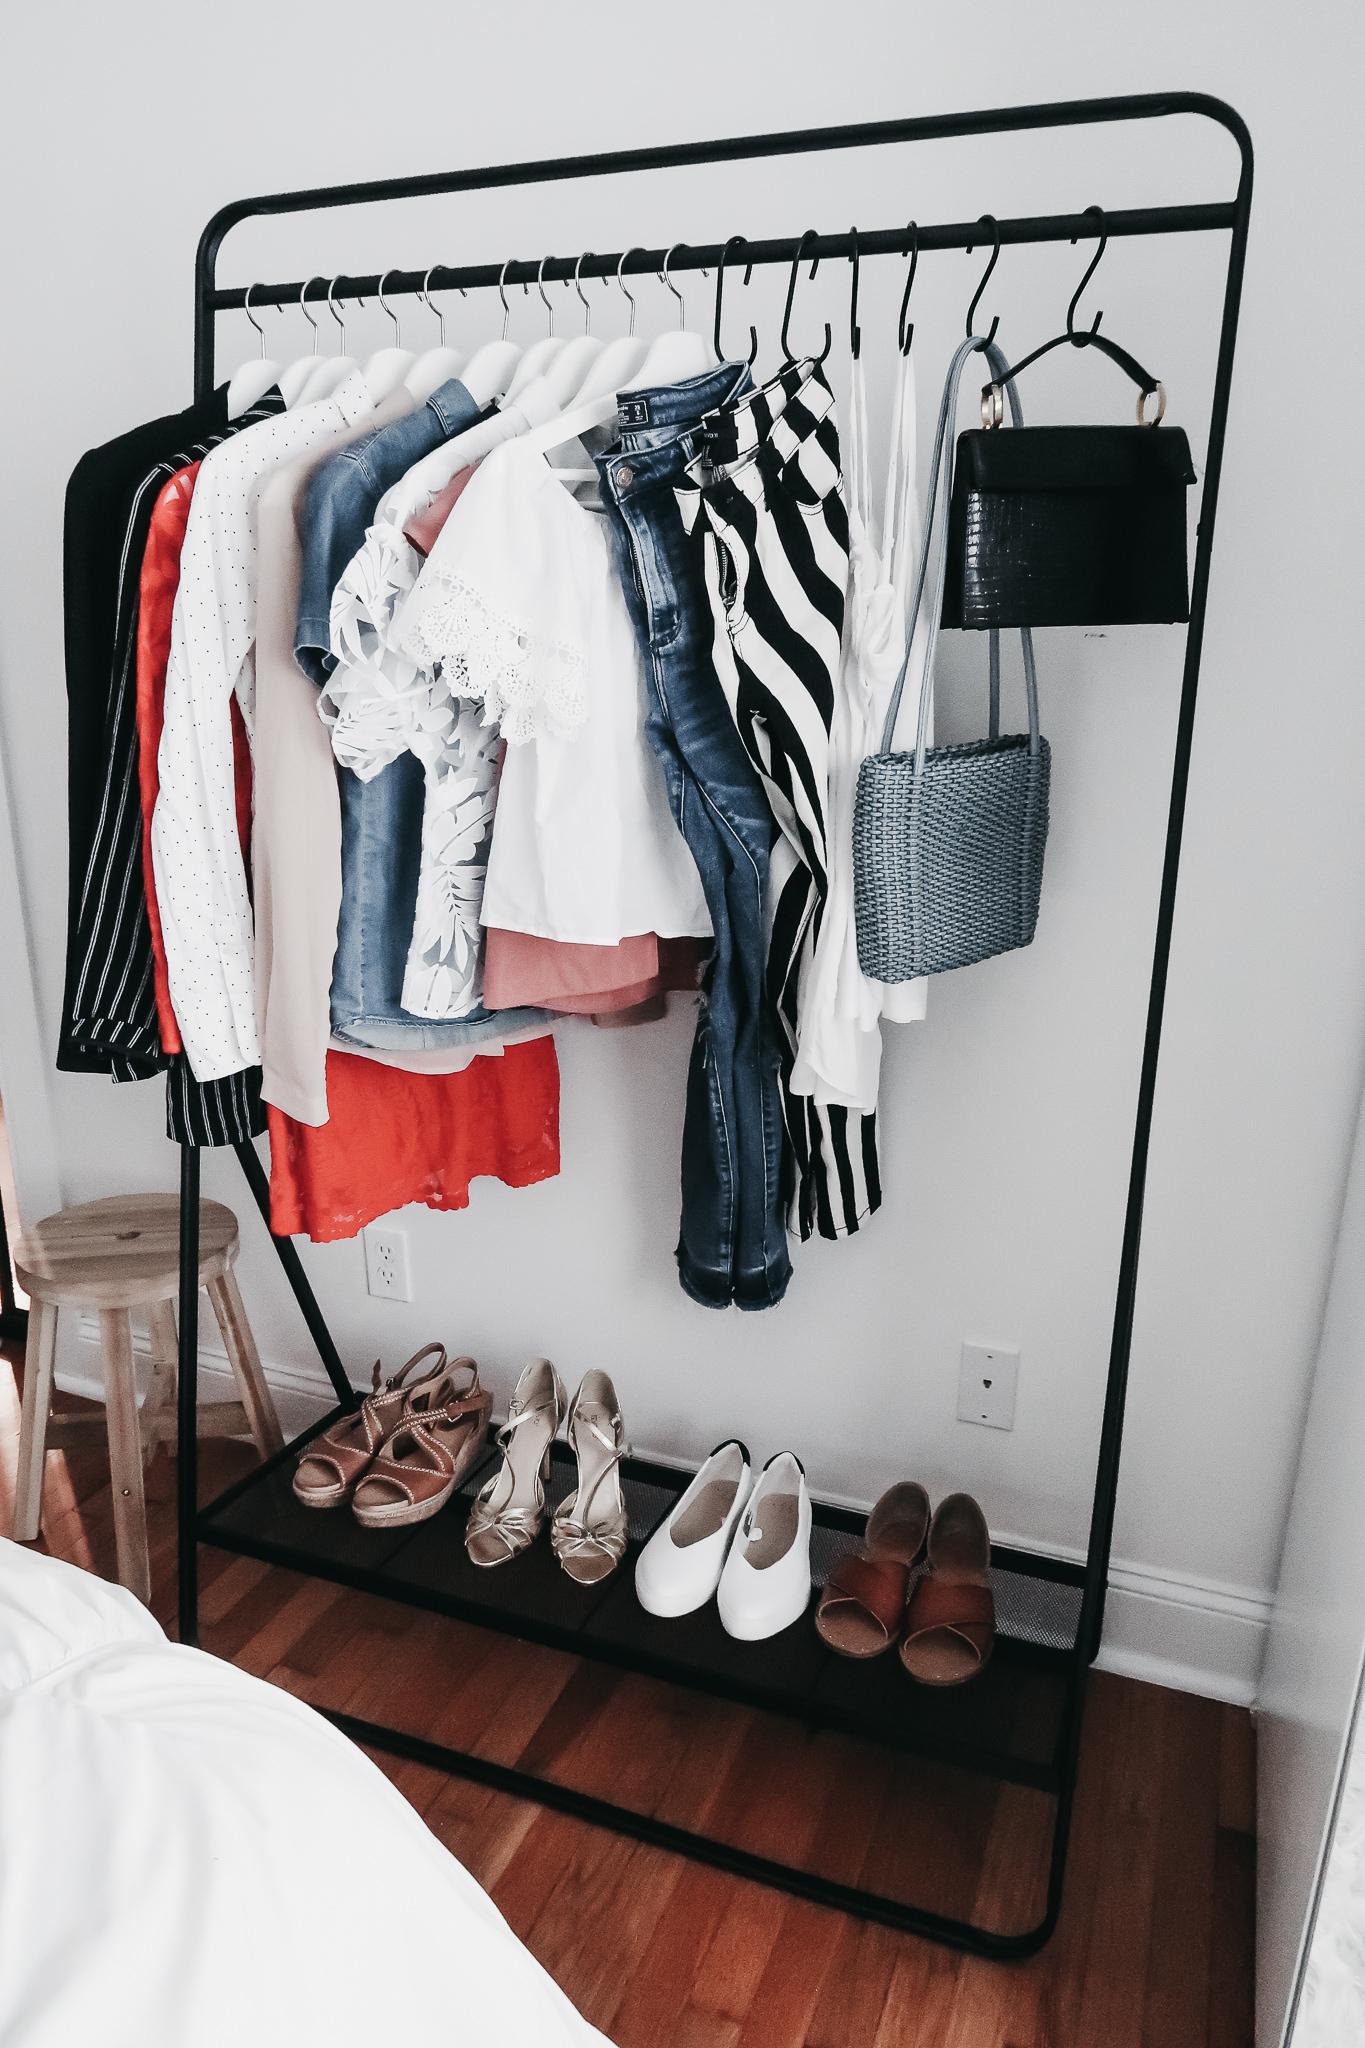 5 Reasons We Are Loving Garment Racks 1